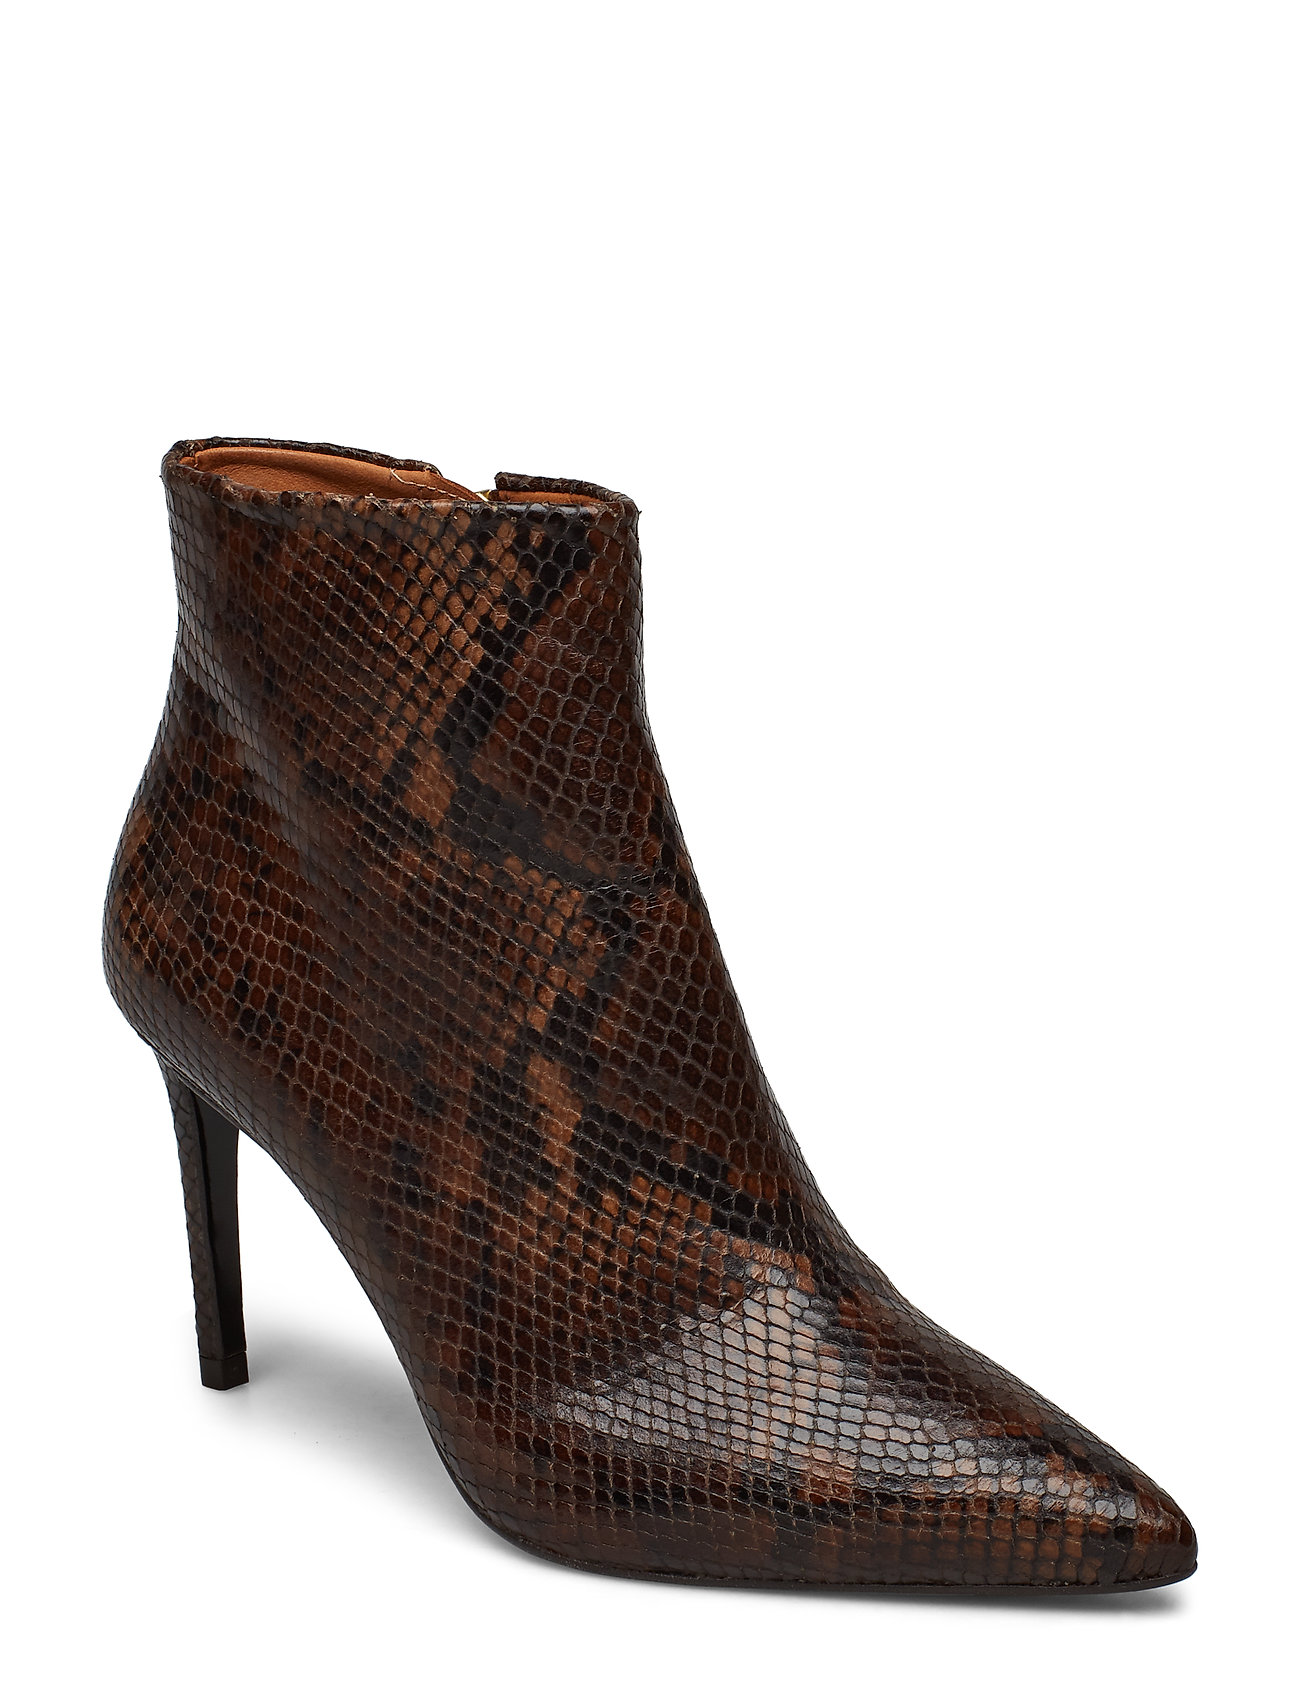 Image of Booties 3360 Shoes Boots Ankle Boots Ankle Boot - Heel Brun Billi Bi (3406199885)